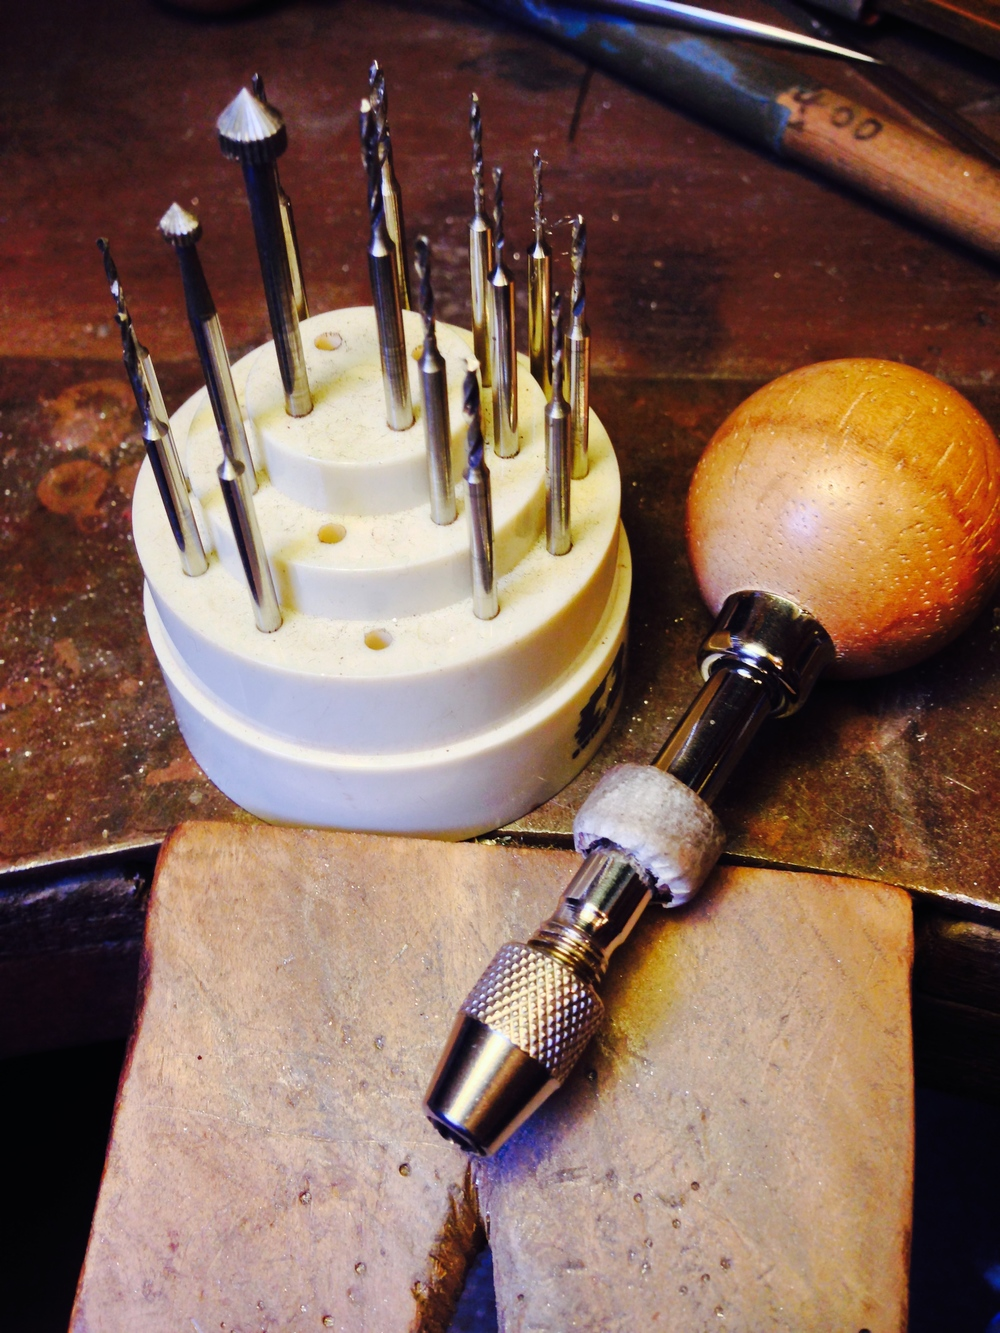 My hand drill and a selection of drills and burrs used for setting stones.